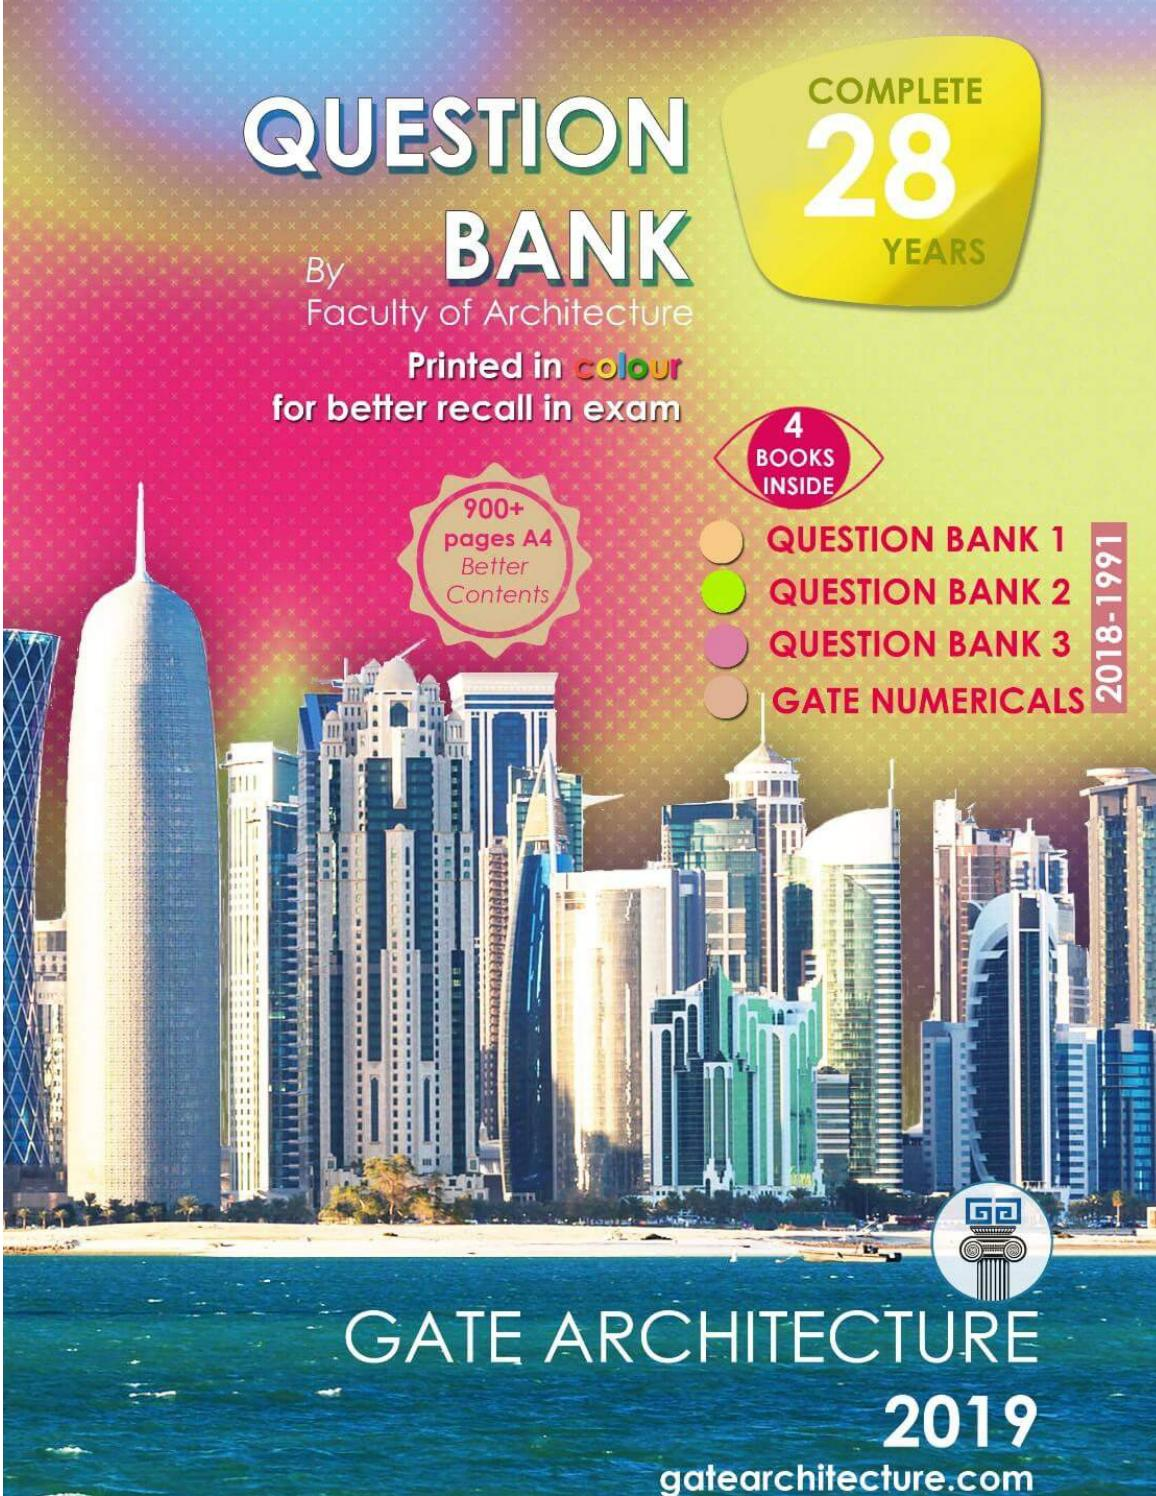 GATE ARCHITECTURE QUESTION BANK (Preview) by gapf GA - issuu